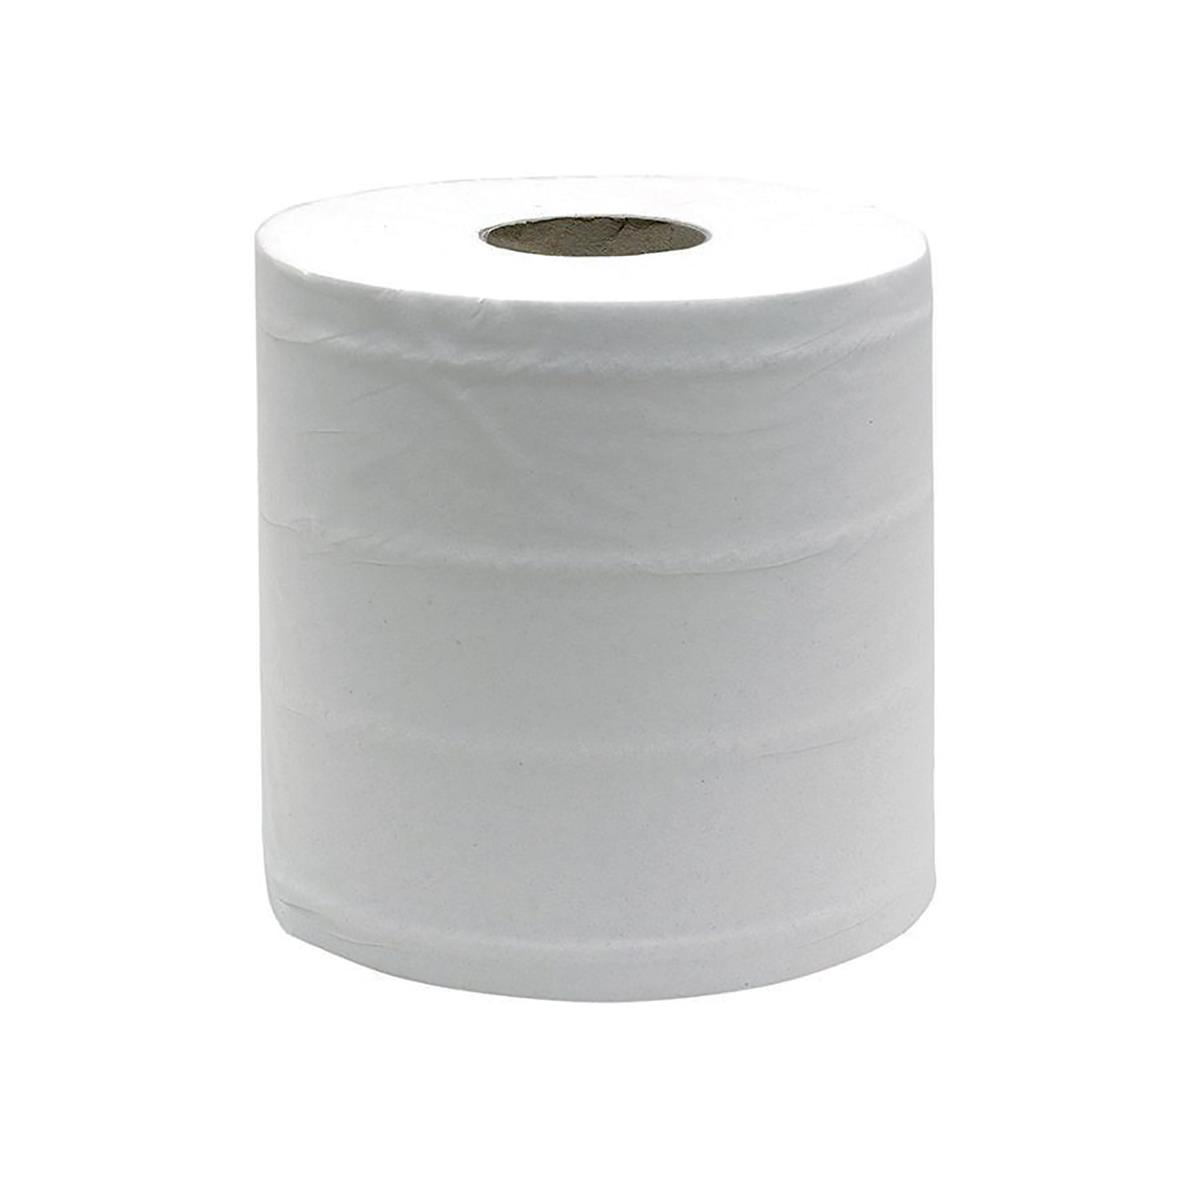 Maxima Centrefeed Roll 3-Ply 114m White Ref 1105185 [Pack 6]